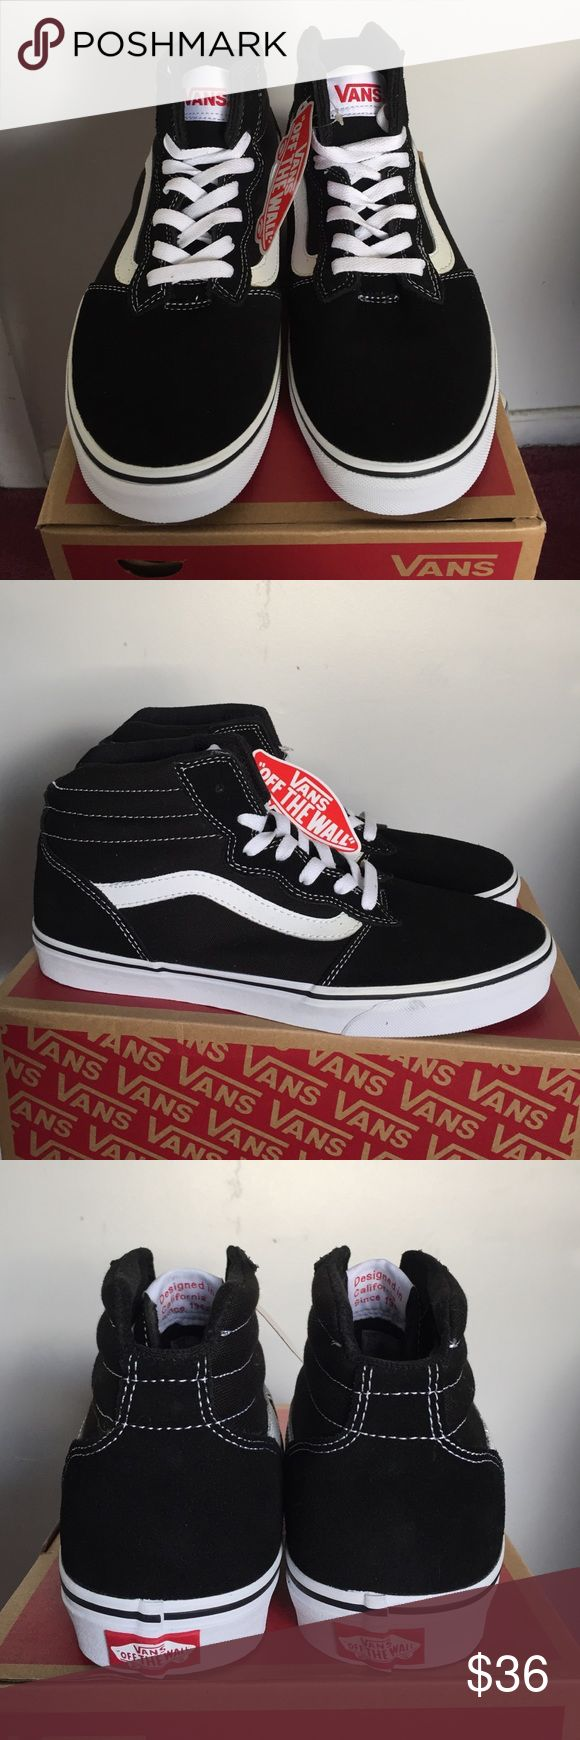 Brand New Authentic Vans men's shoes High top. Black suede front and back with logo design on the side Vans Shoes Athletic Shoes